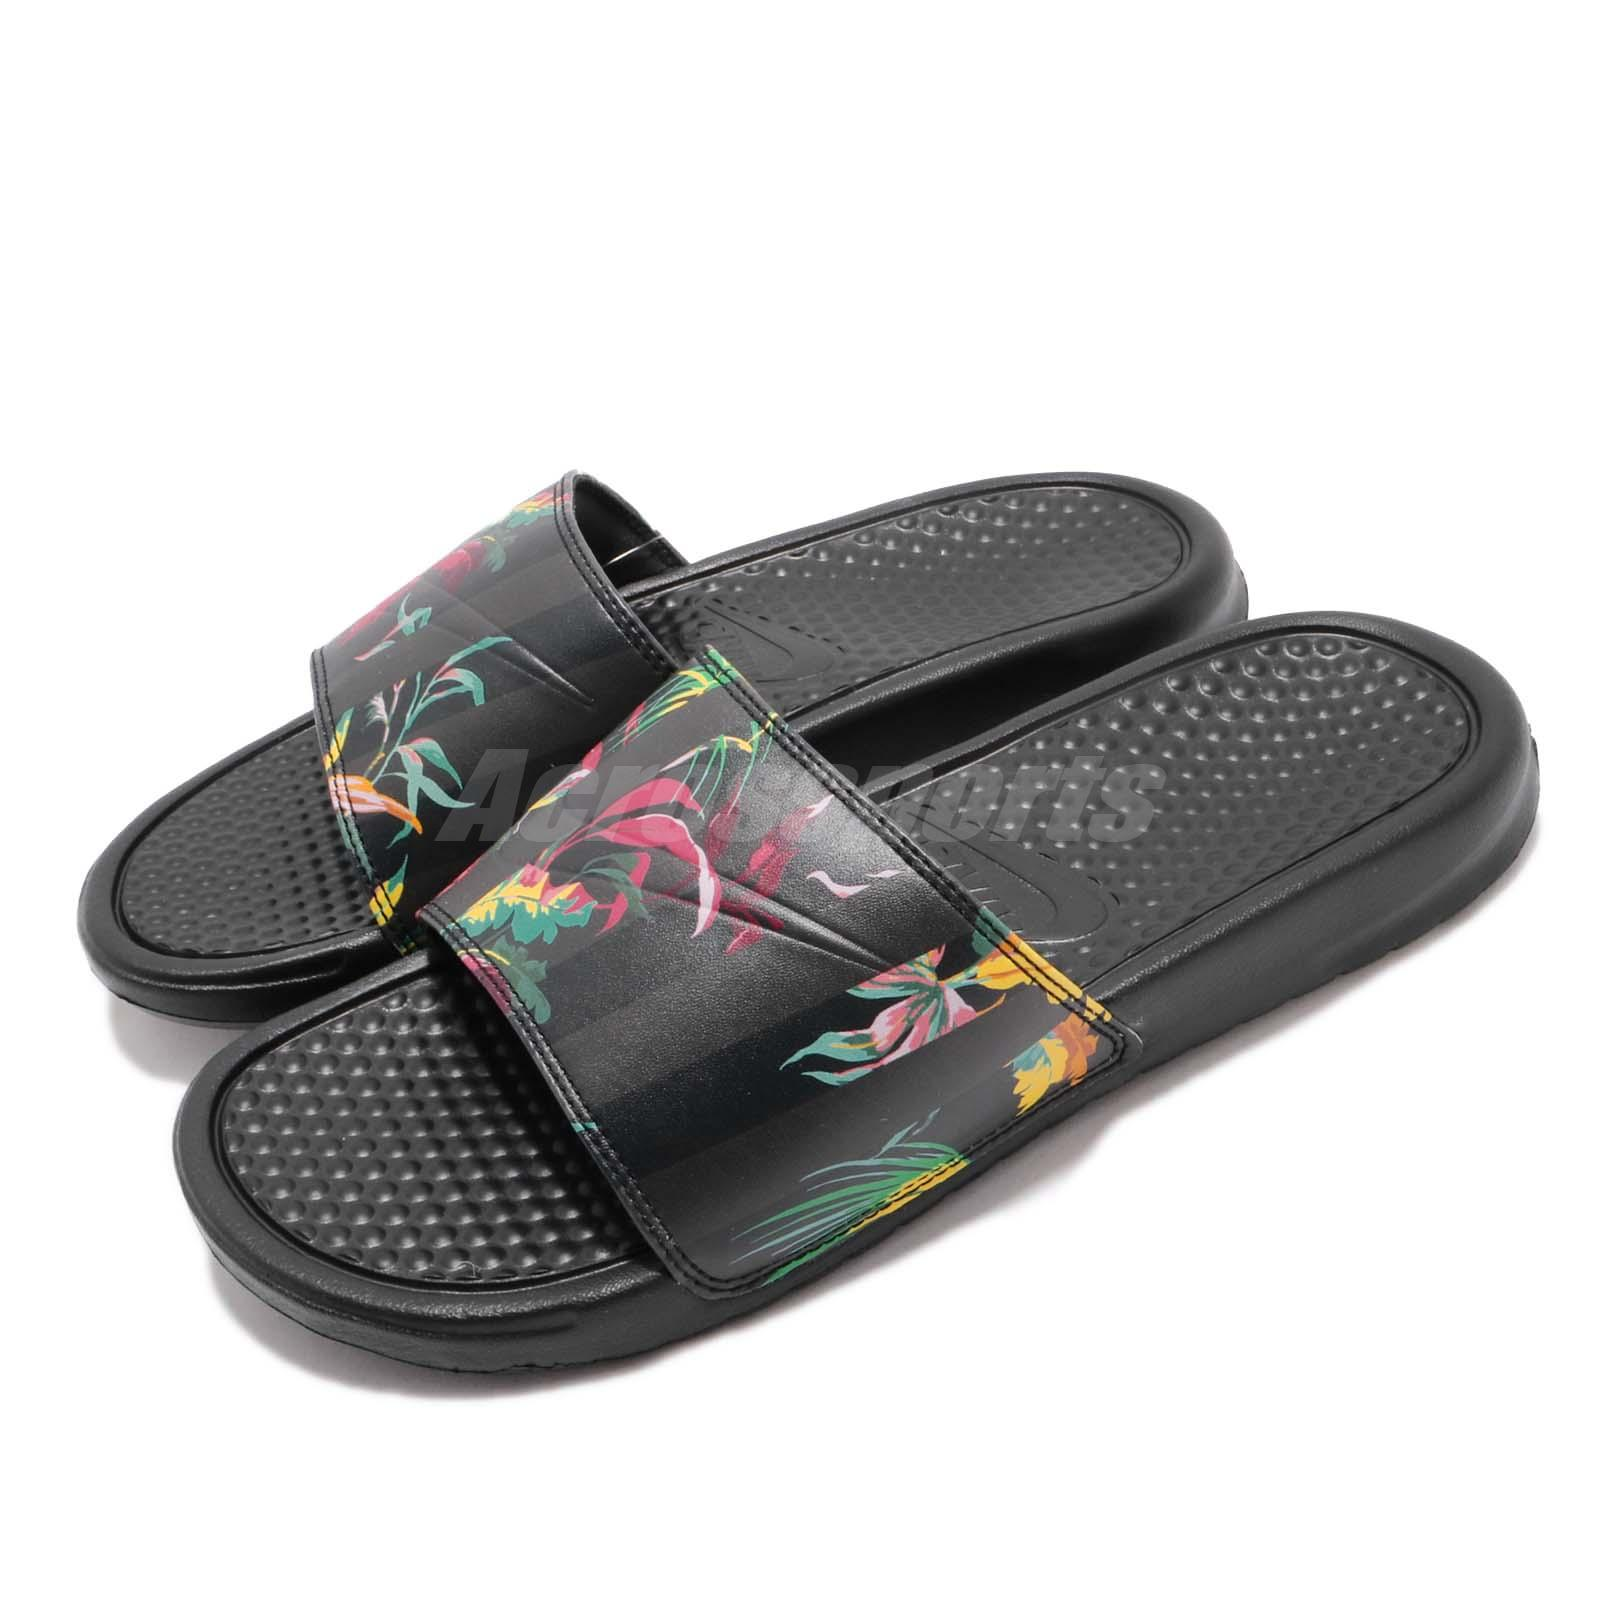 buy popular abbda 8e4a8 Details about Nike Benassi JDI Print Black Floral Just Do It Slide Slipper  Sandal 631261-023